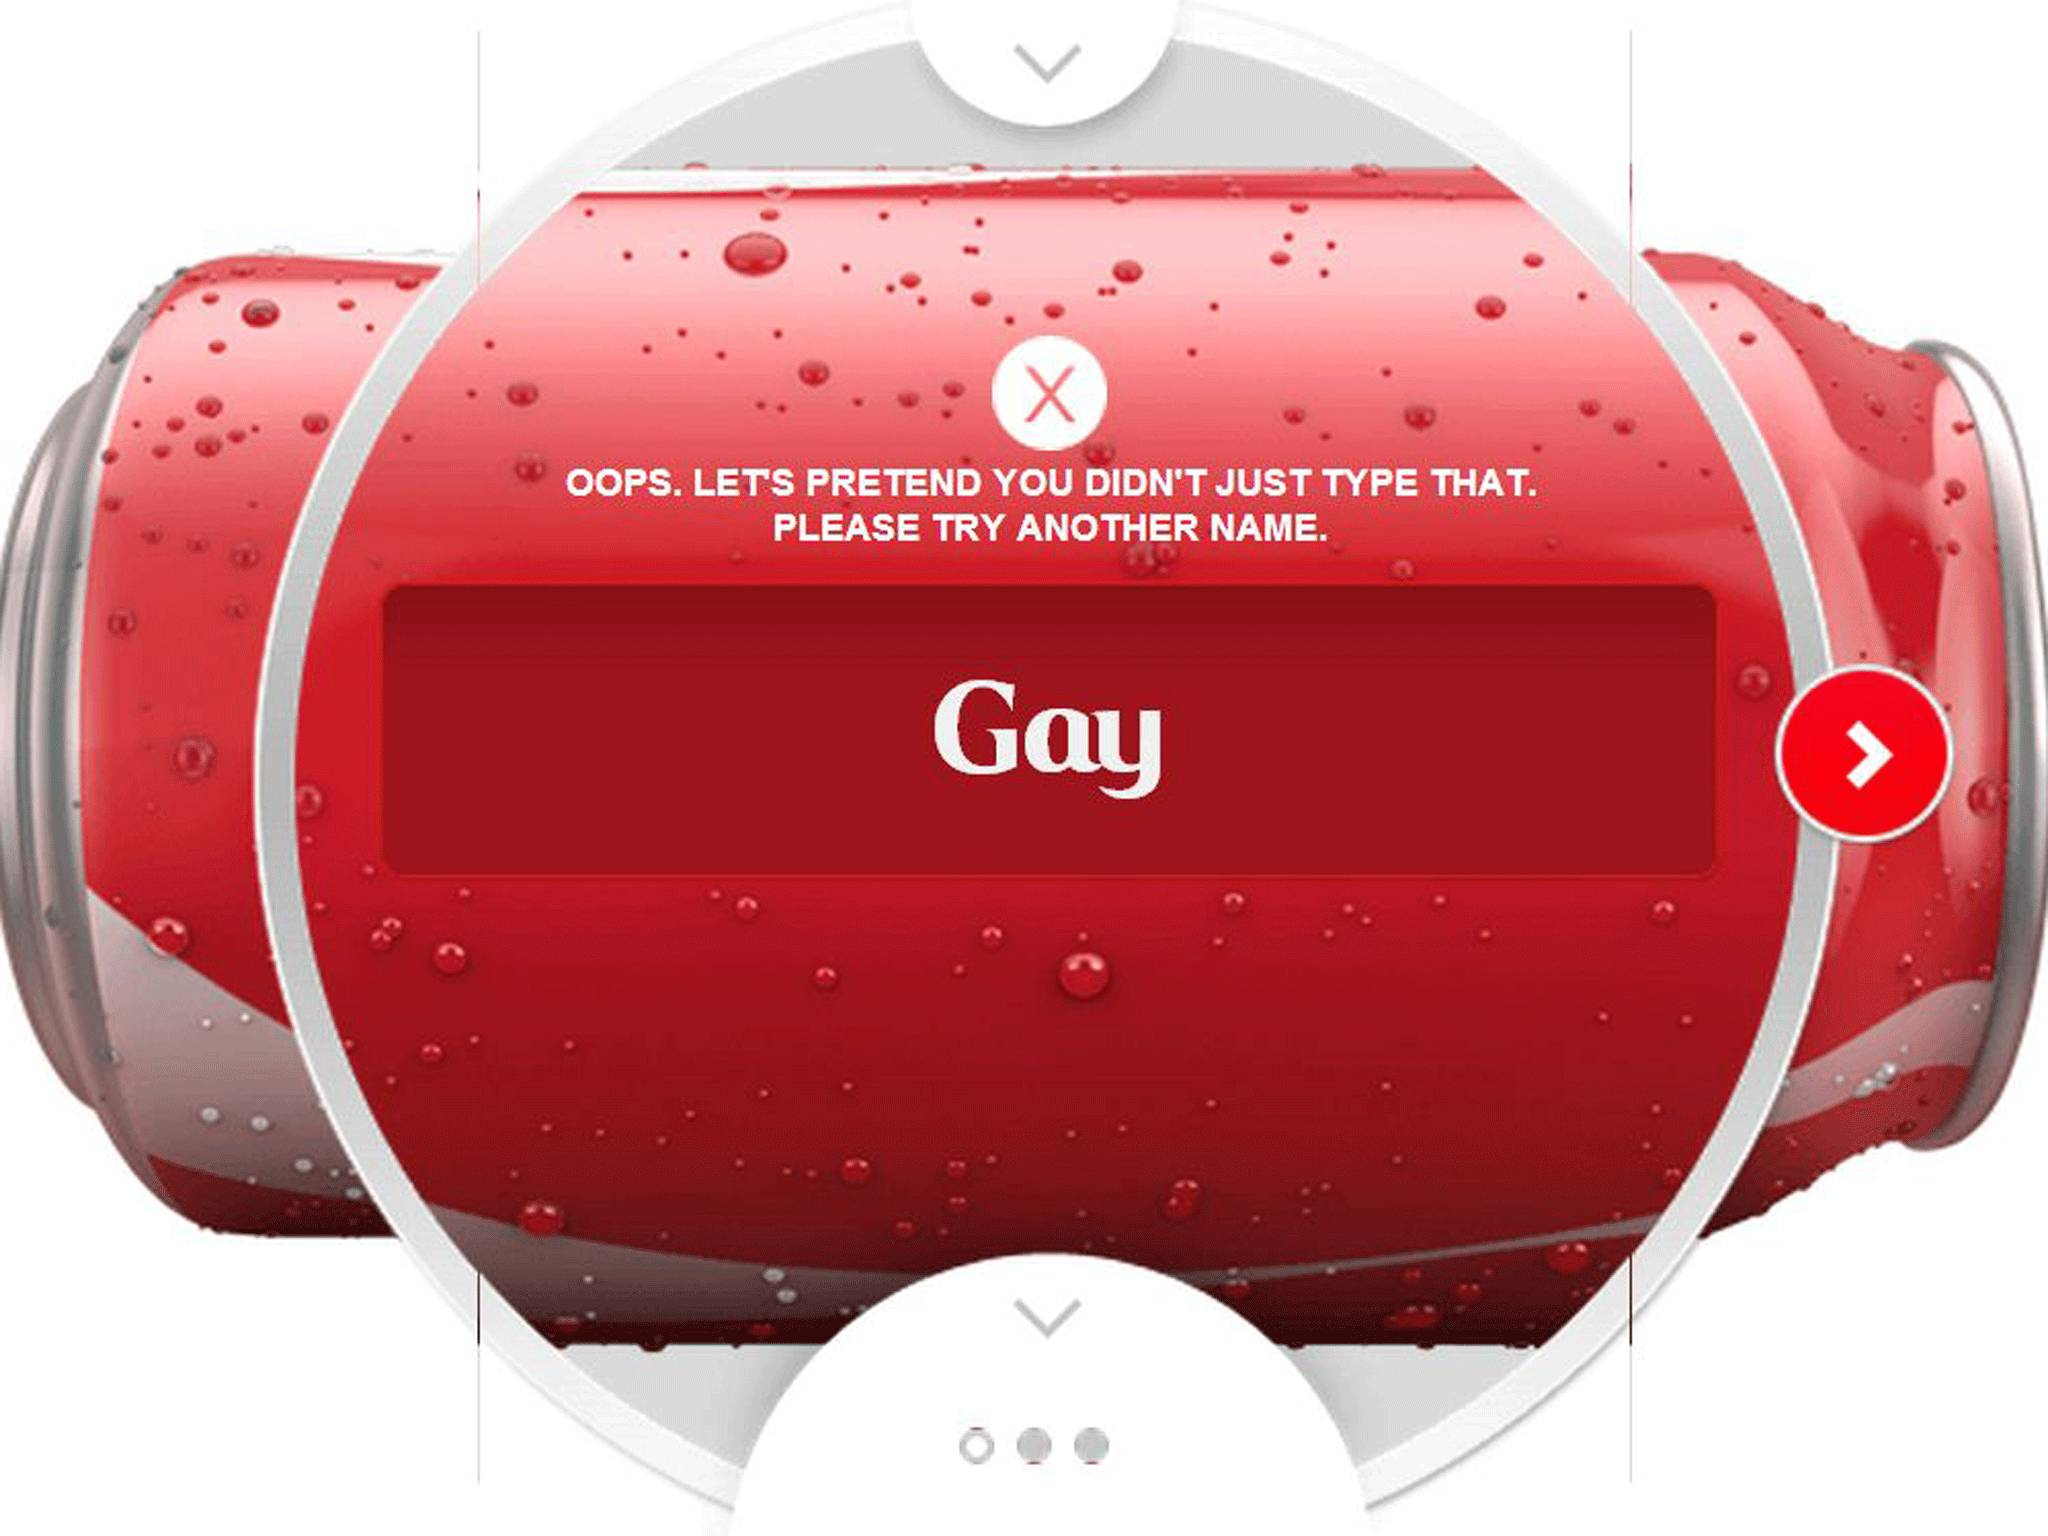 Sochi Olympics sponsor Coca-Cola wants to share a Coke, but not with gay people